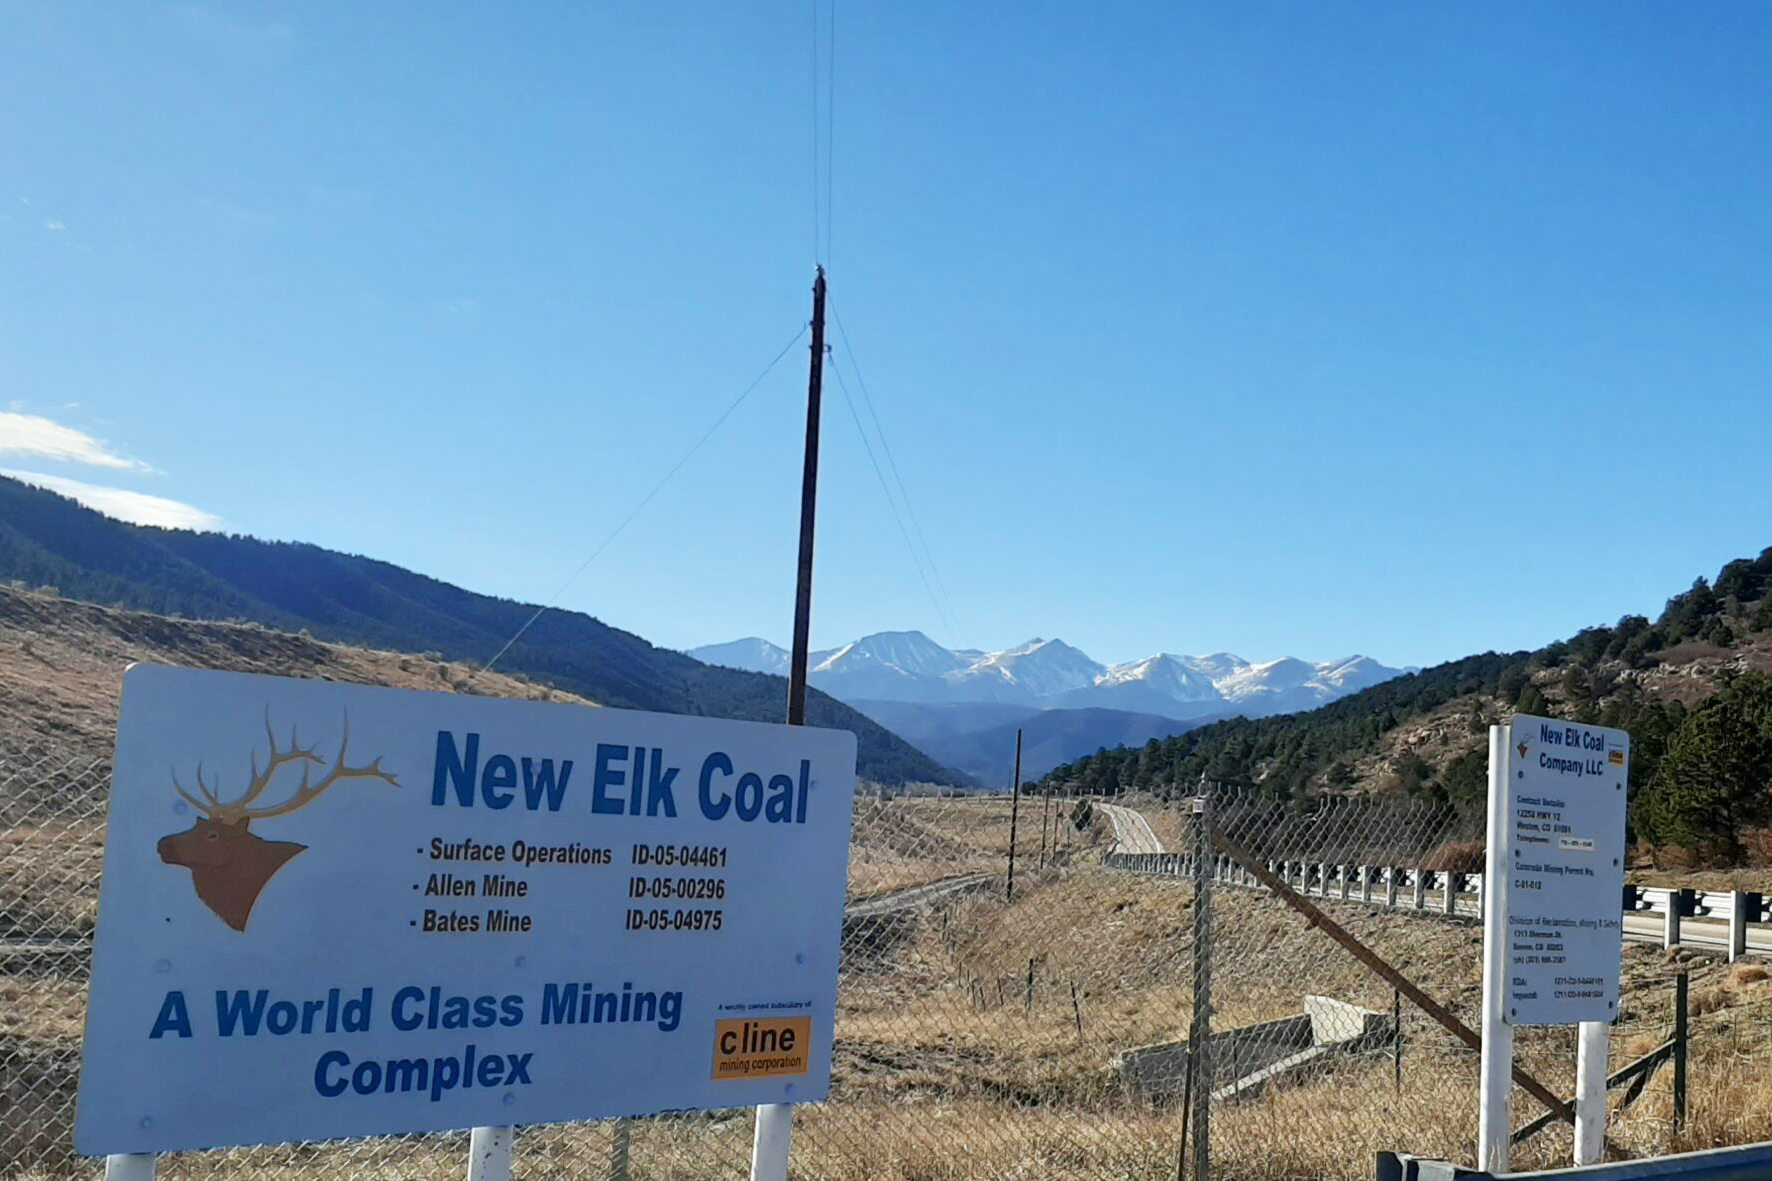 New Elk Coal is preparing to start mining this summer alongside the Highway of Legends in Las Animas County.